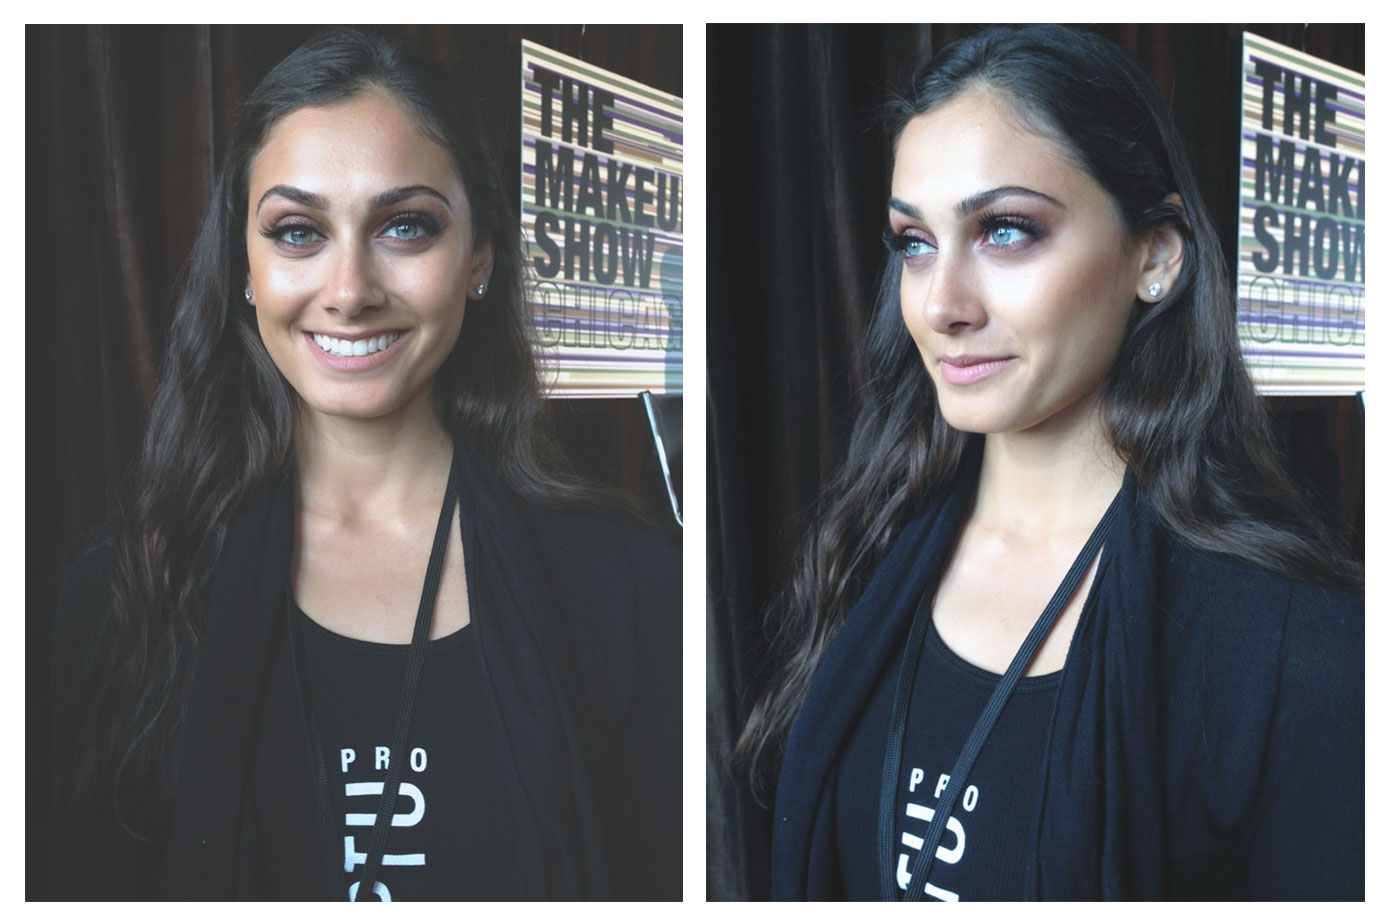 HOW-TO: Create the Perfect Complexion with Airbrush Make-Up